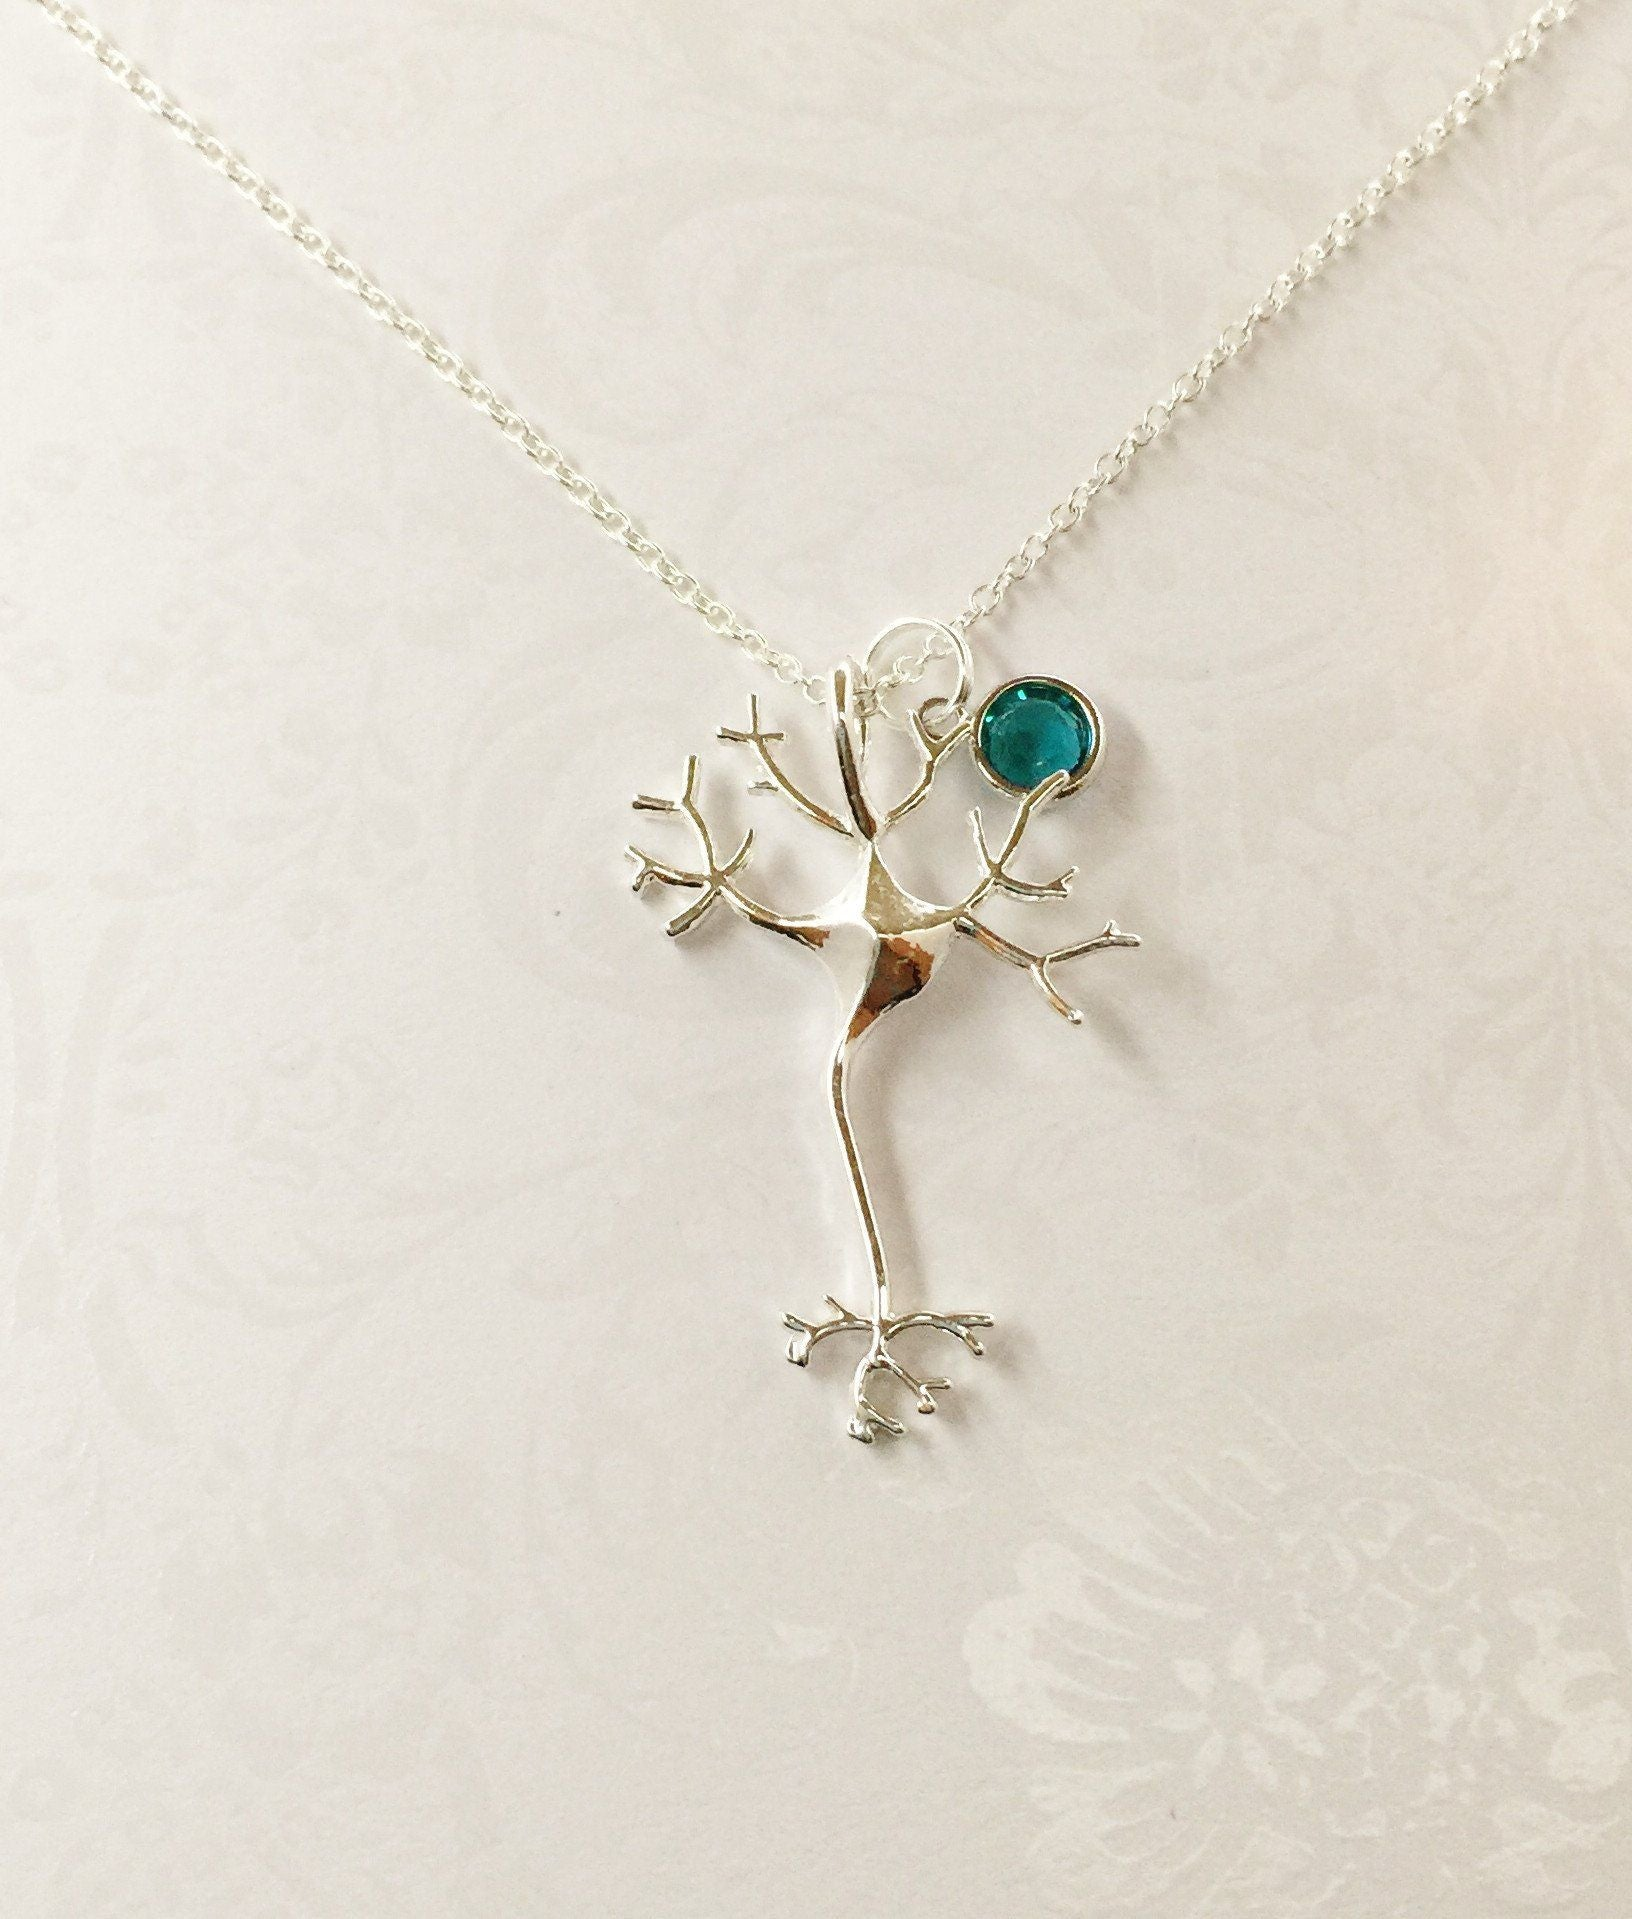 Neuron Necklace with Swarovski Birthstone - Anomaly Creations & Designs